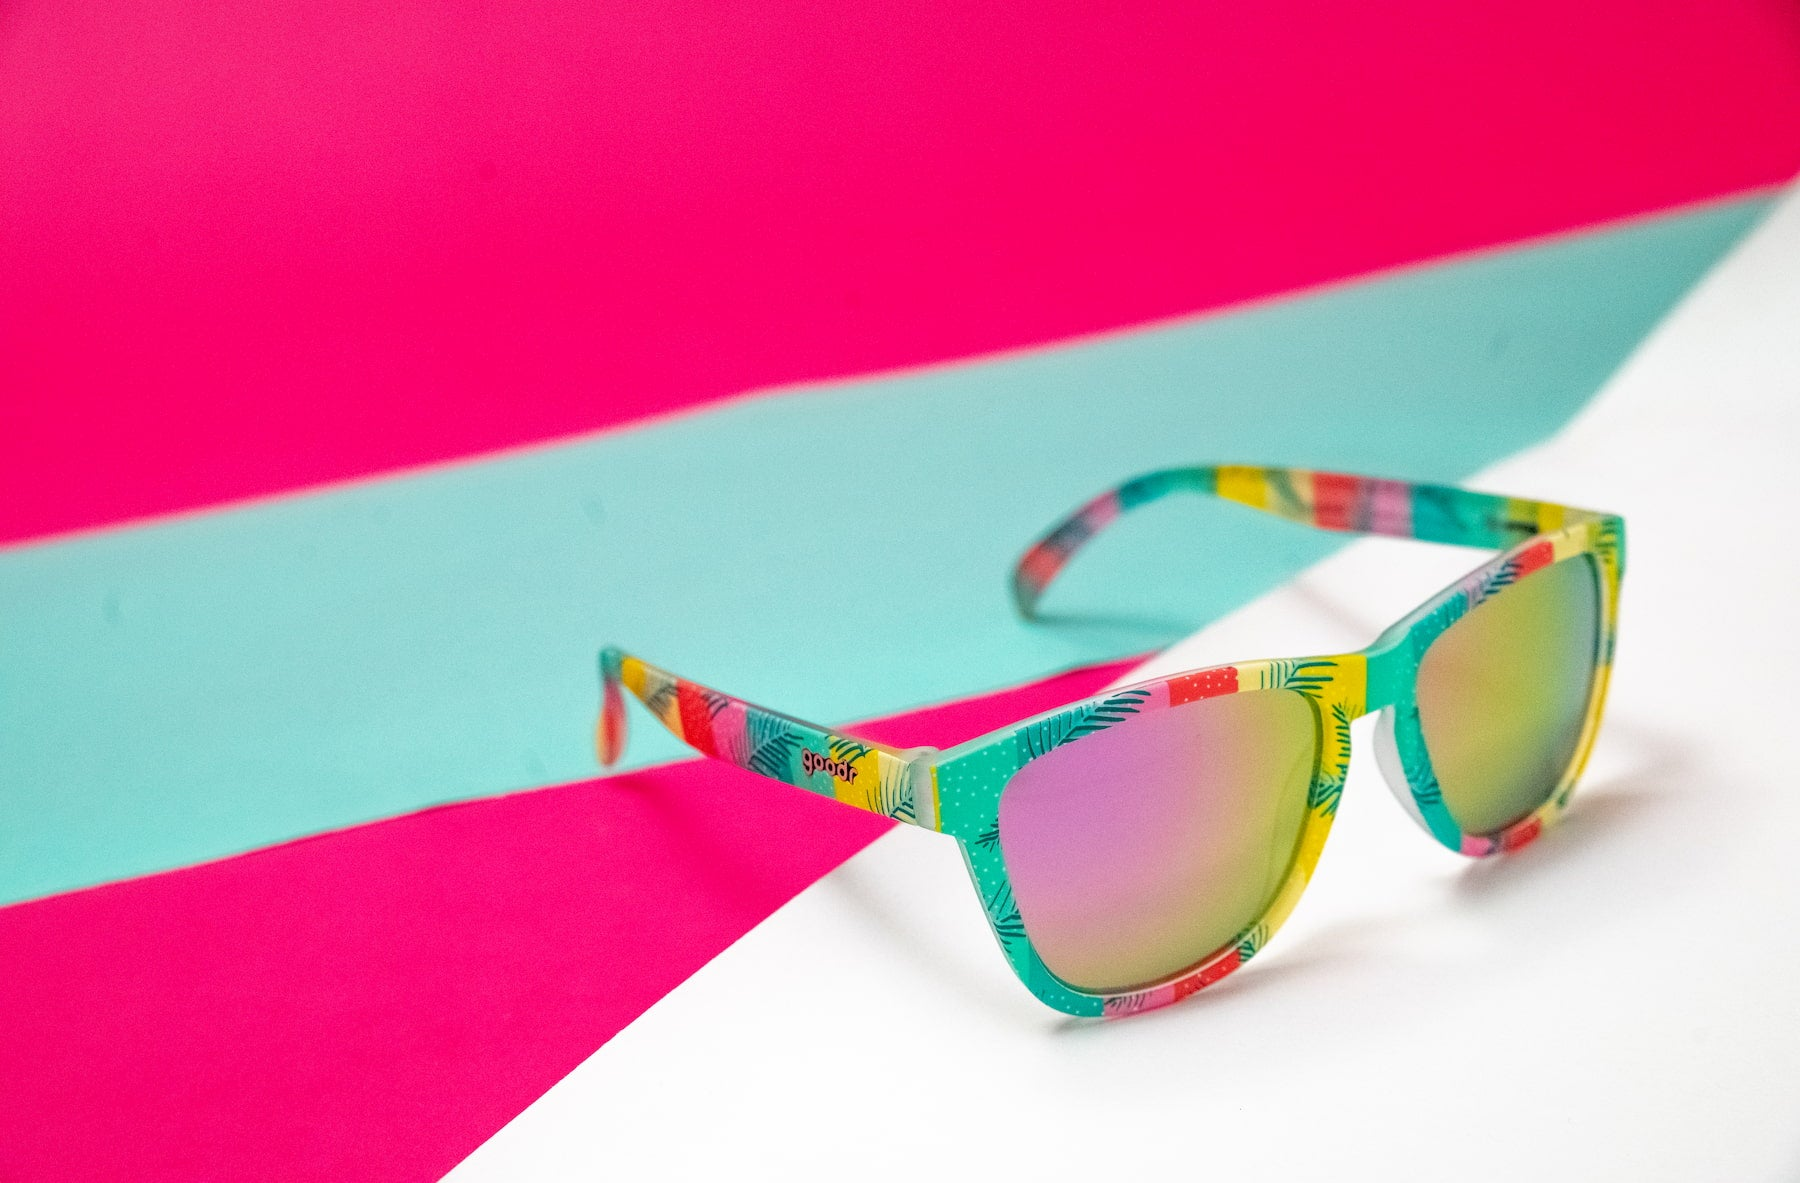 goodr polarized limited edition pink and teal sunglasses